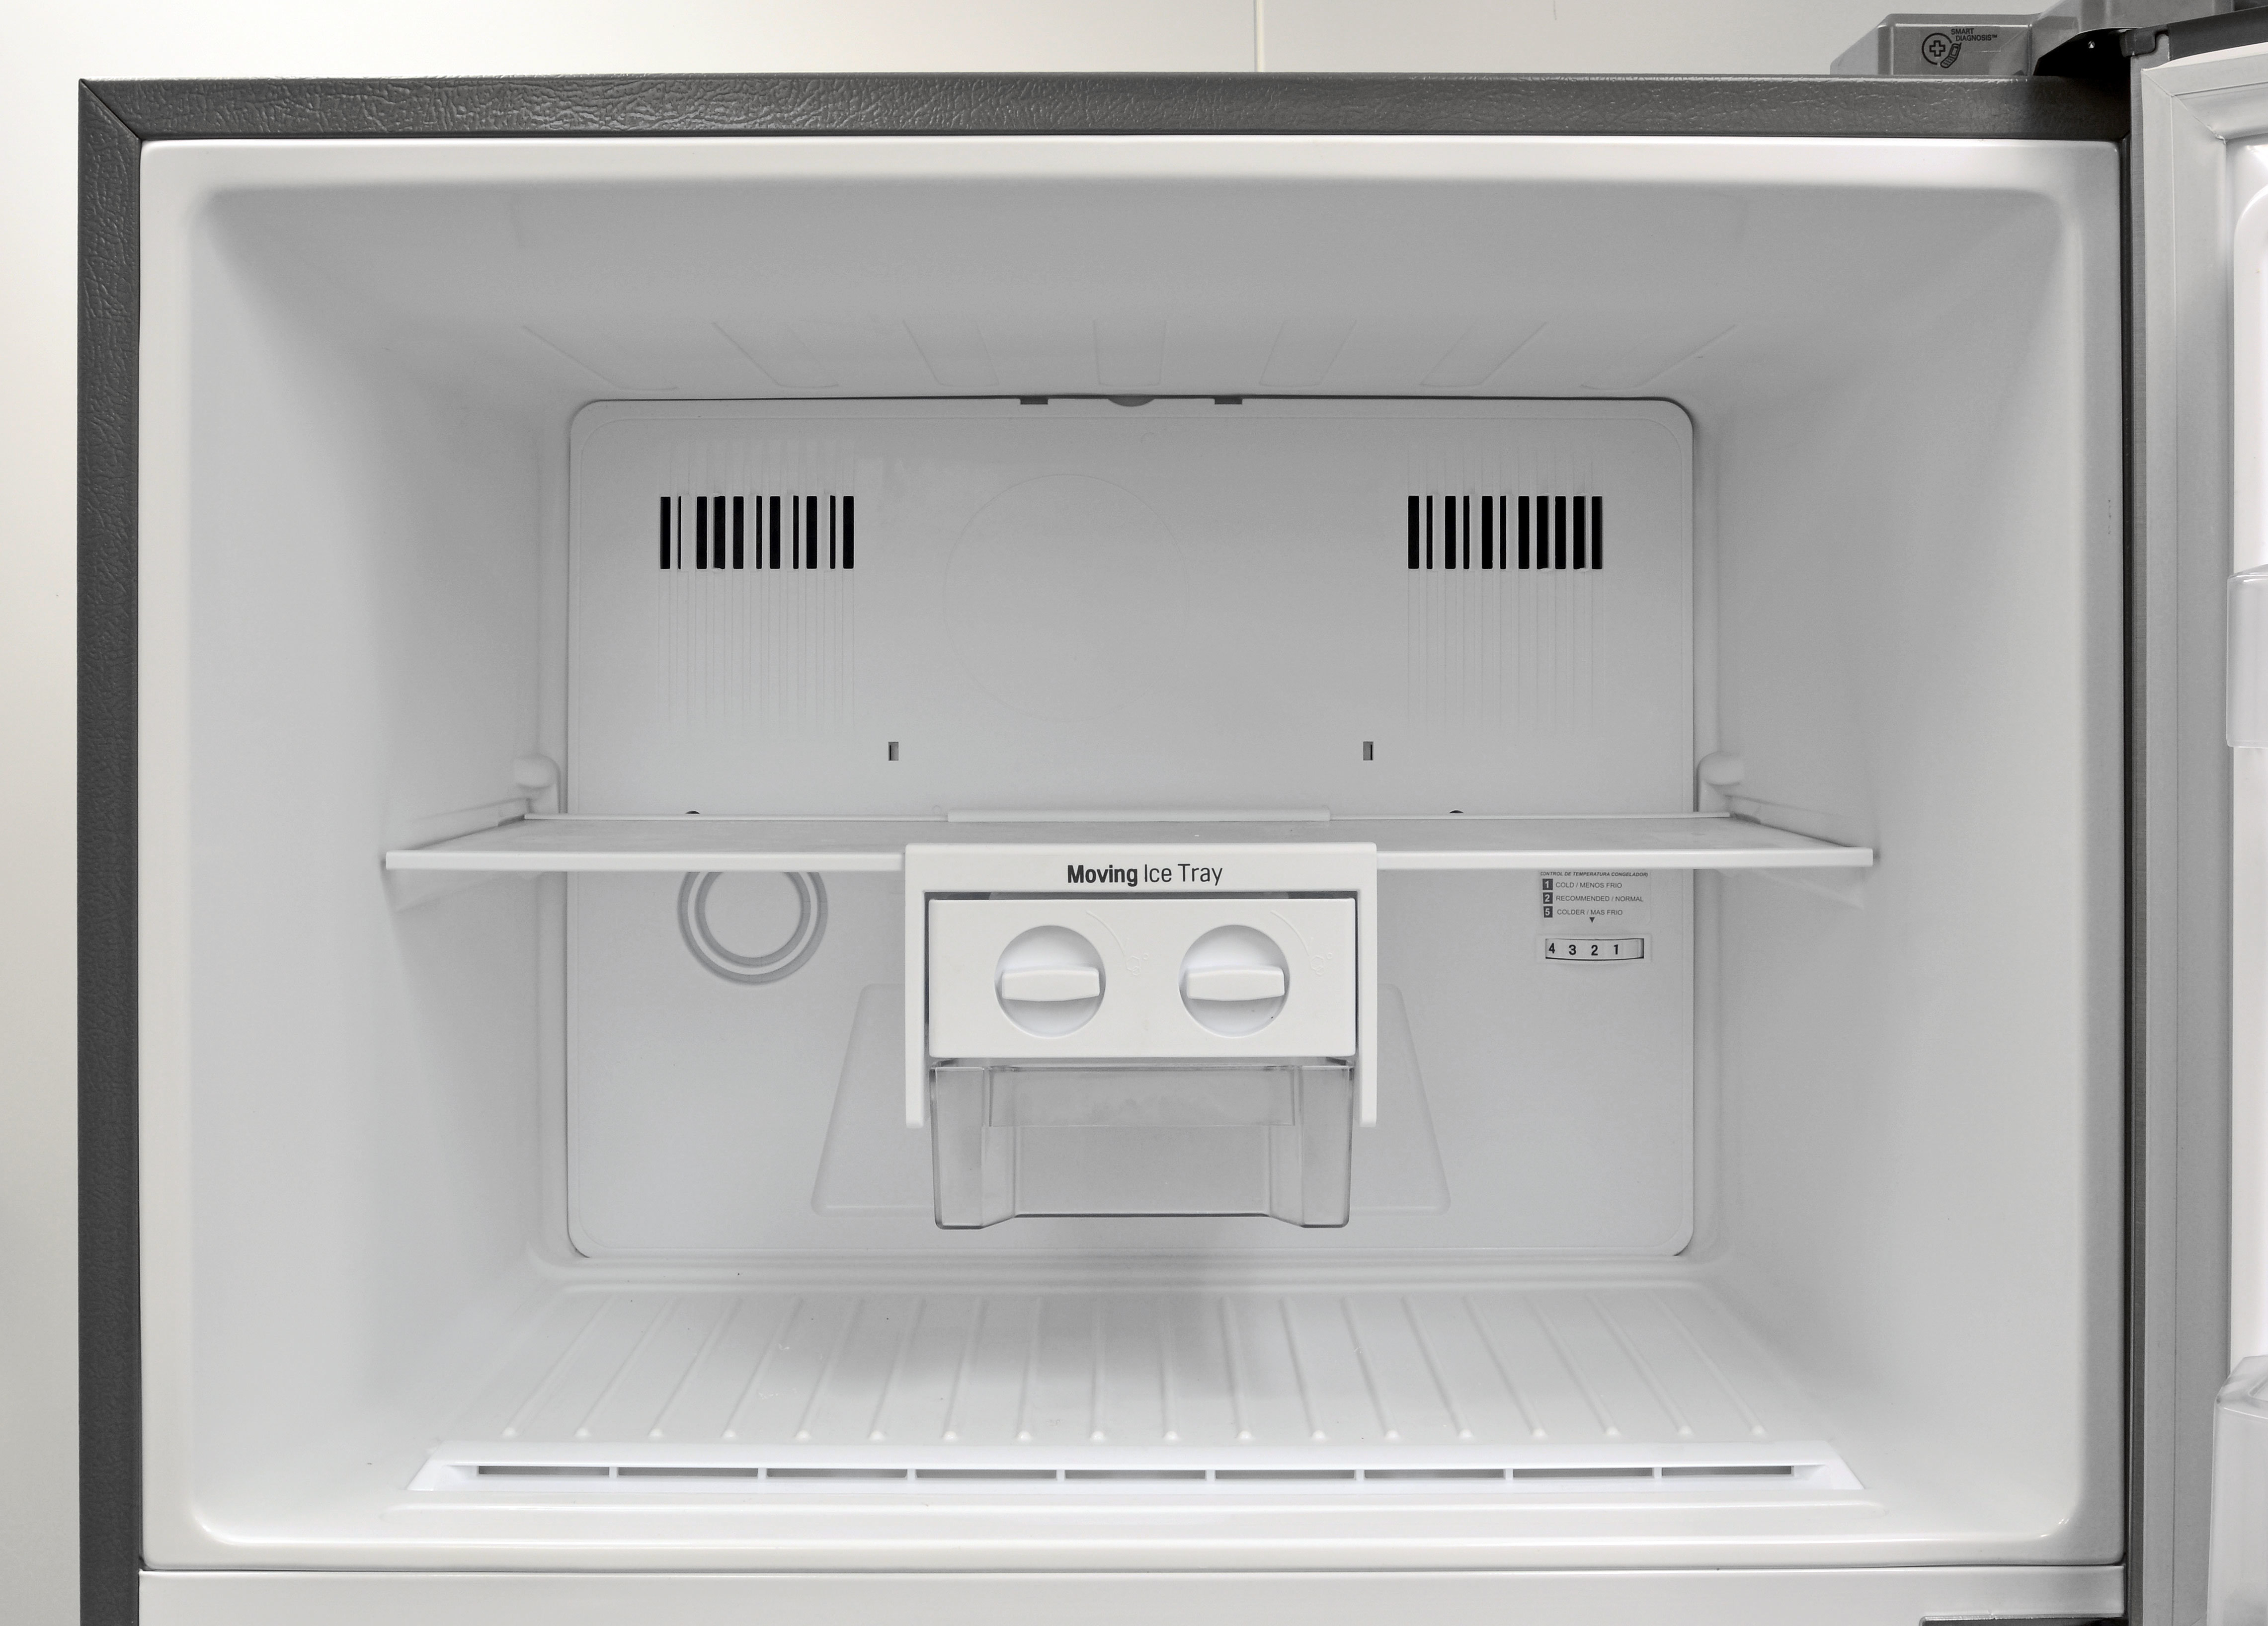 The LG LTNS16121V's basic freezer lacks a light bulb, but it does include a sliding bin complete with two small ice cube trays that you have to remove to fill.